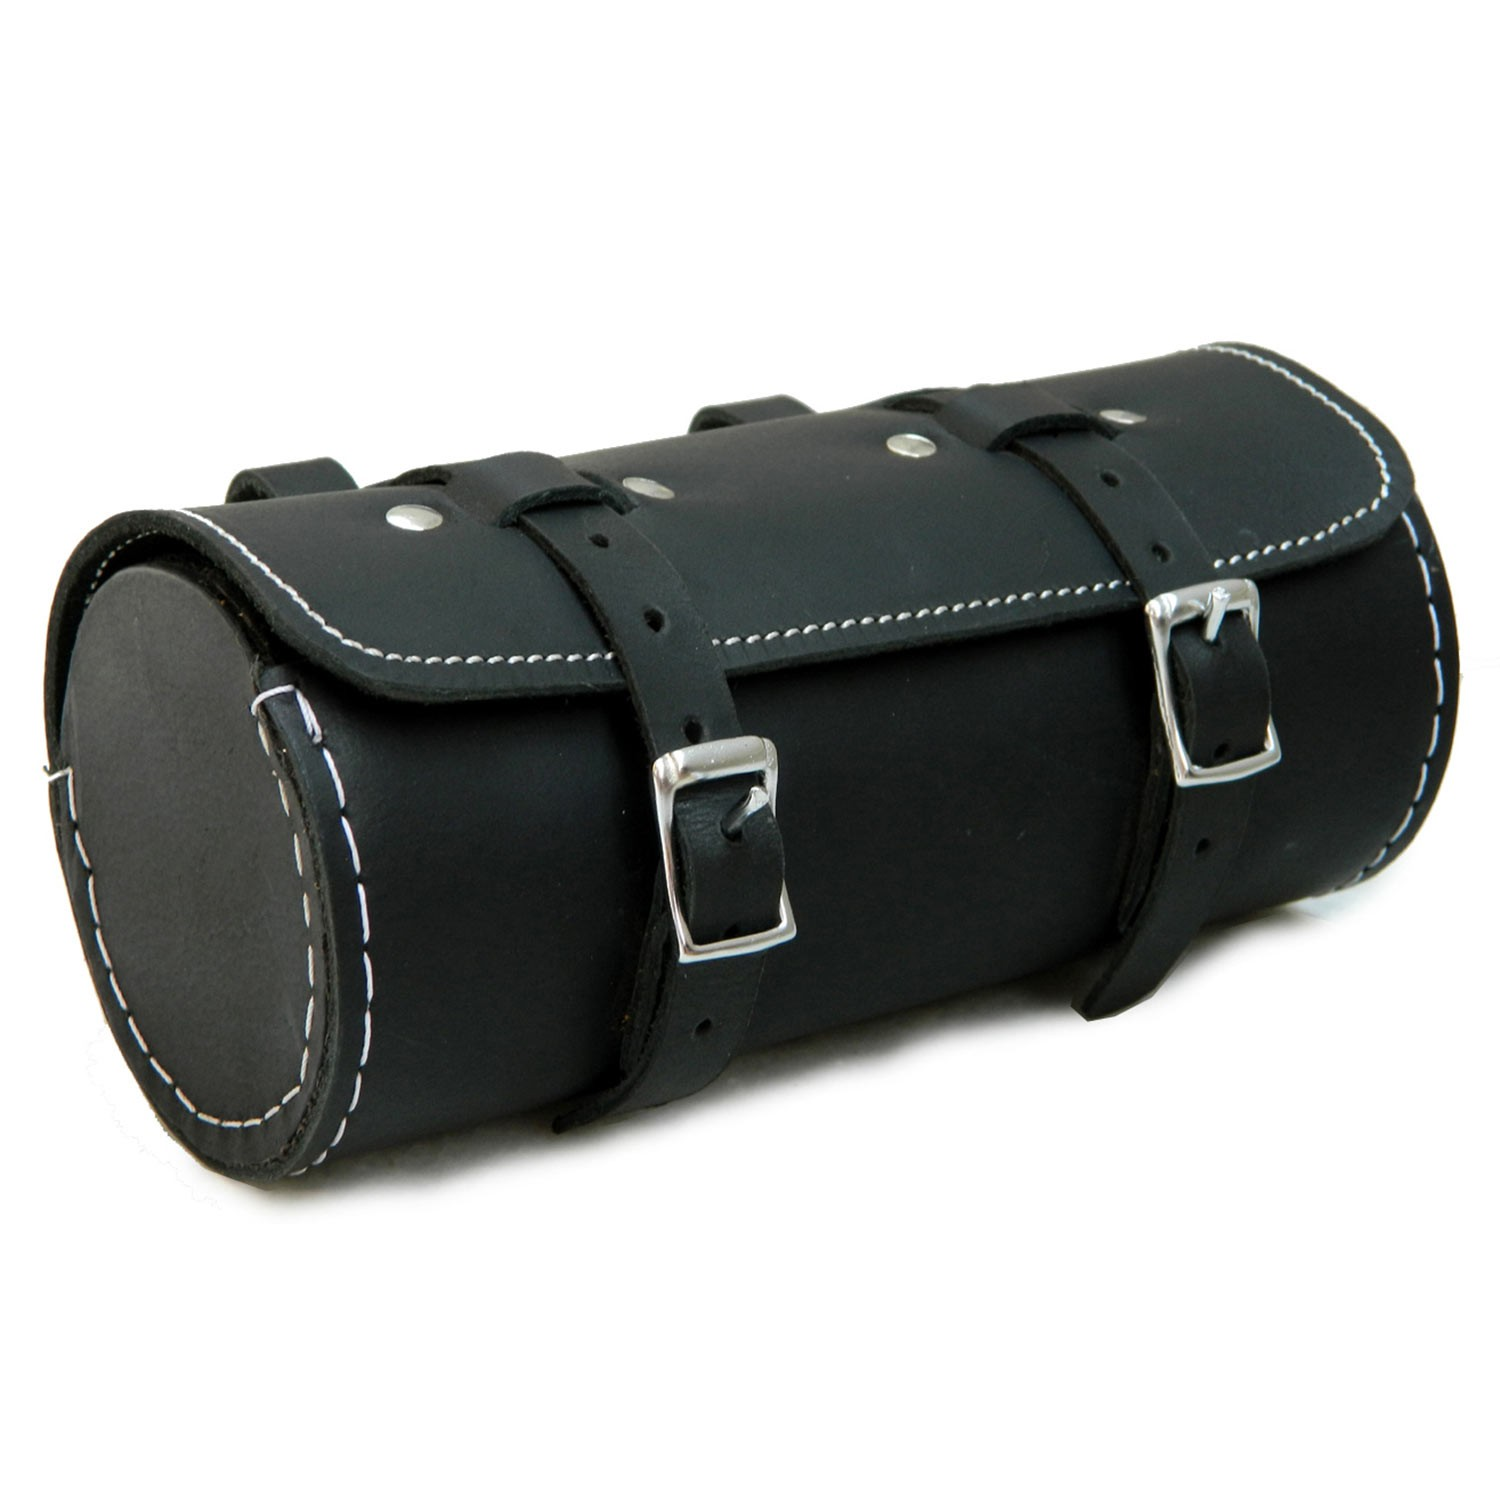 Bicycle Round Saddle Bag in Genuine Leather Tool Bag